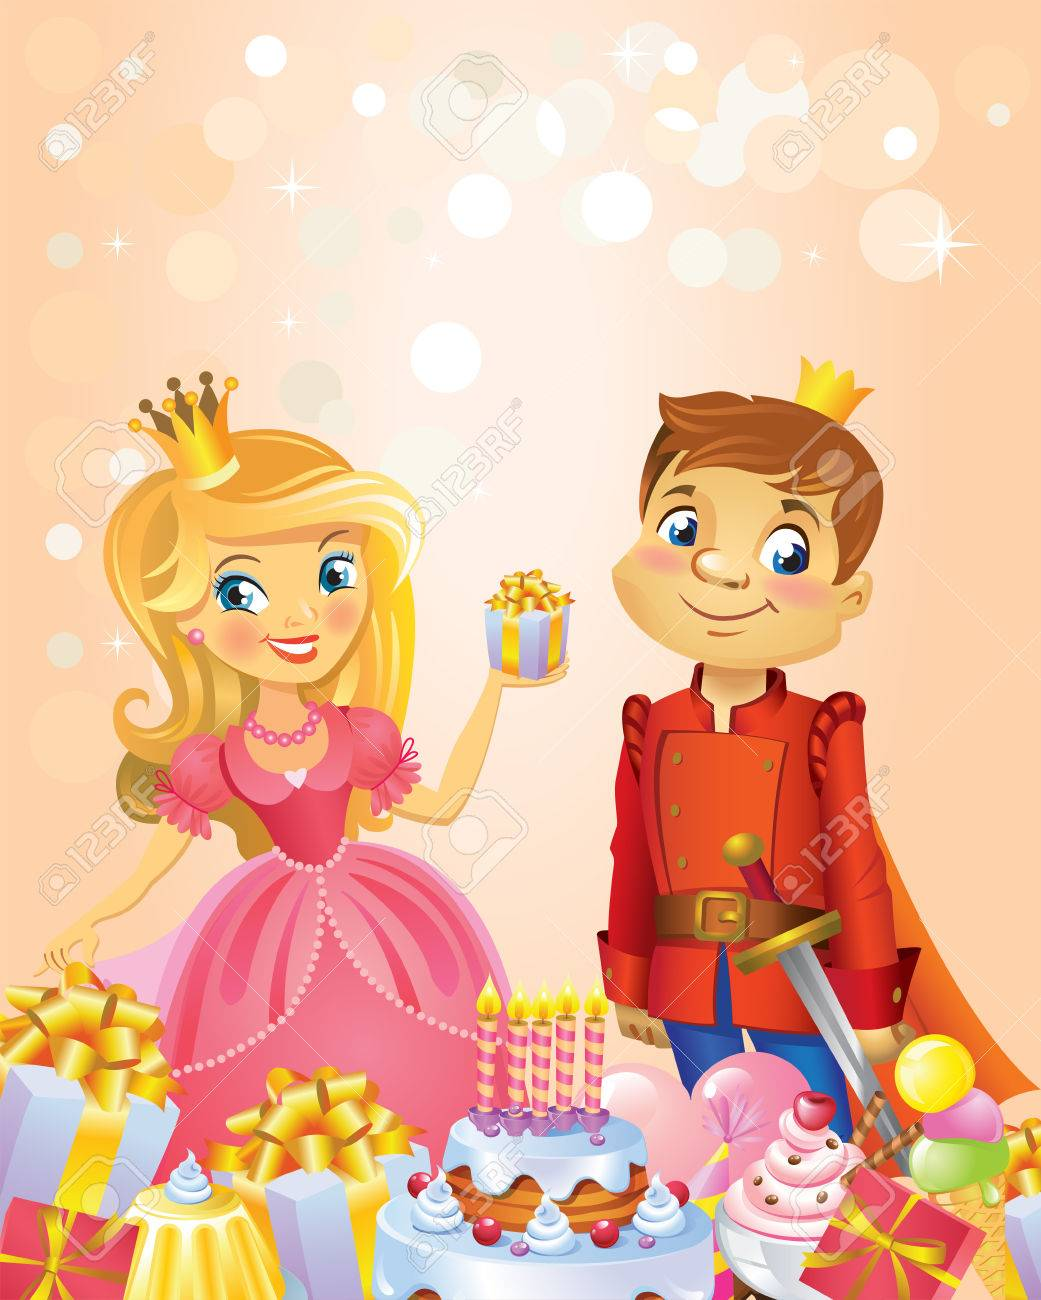 Illustration Of Beautiful Princess And Prince, Possible To Use ...